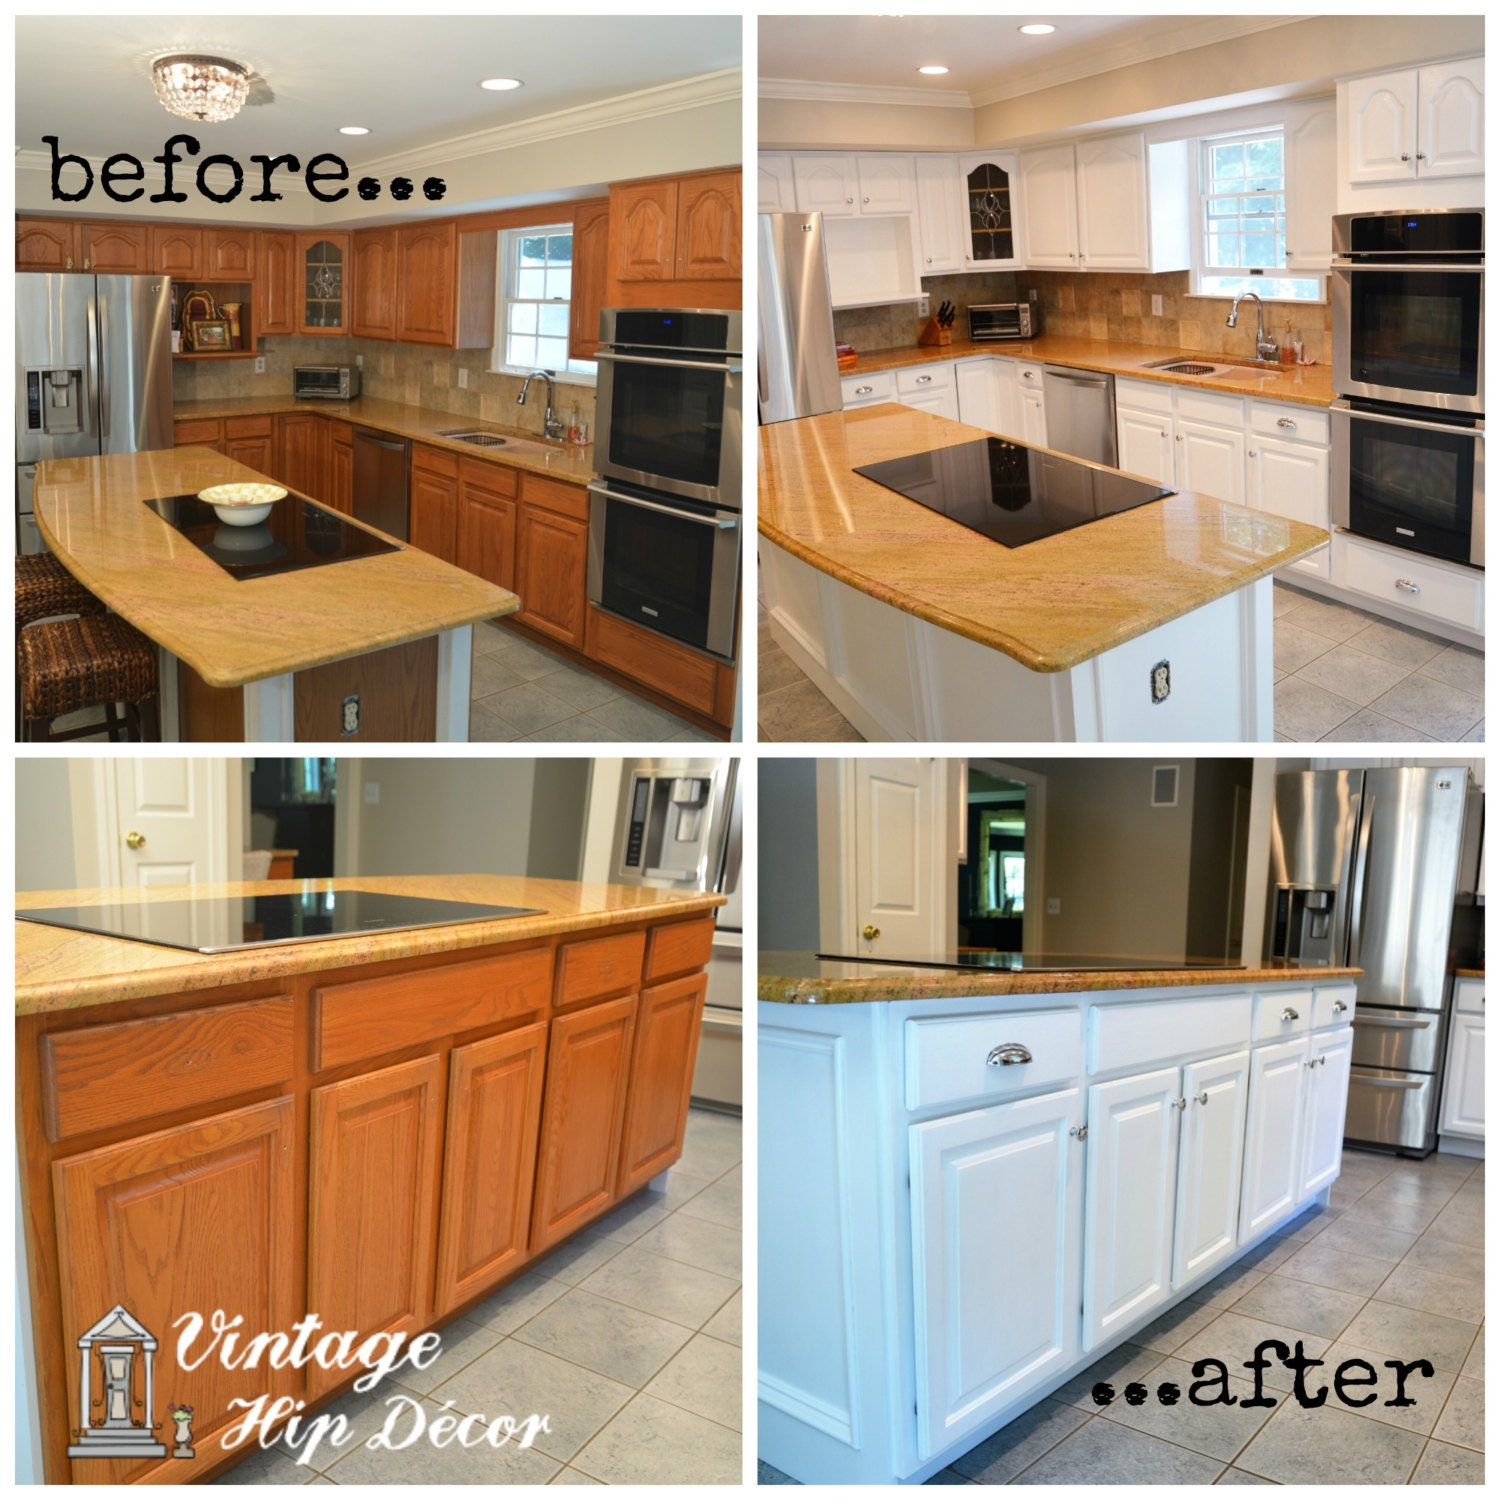 Kitchen Cabinet Refacing Nj: Refinishing Kitchen Cabinets